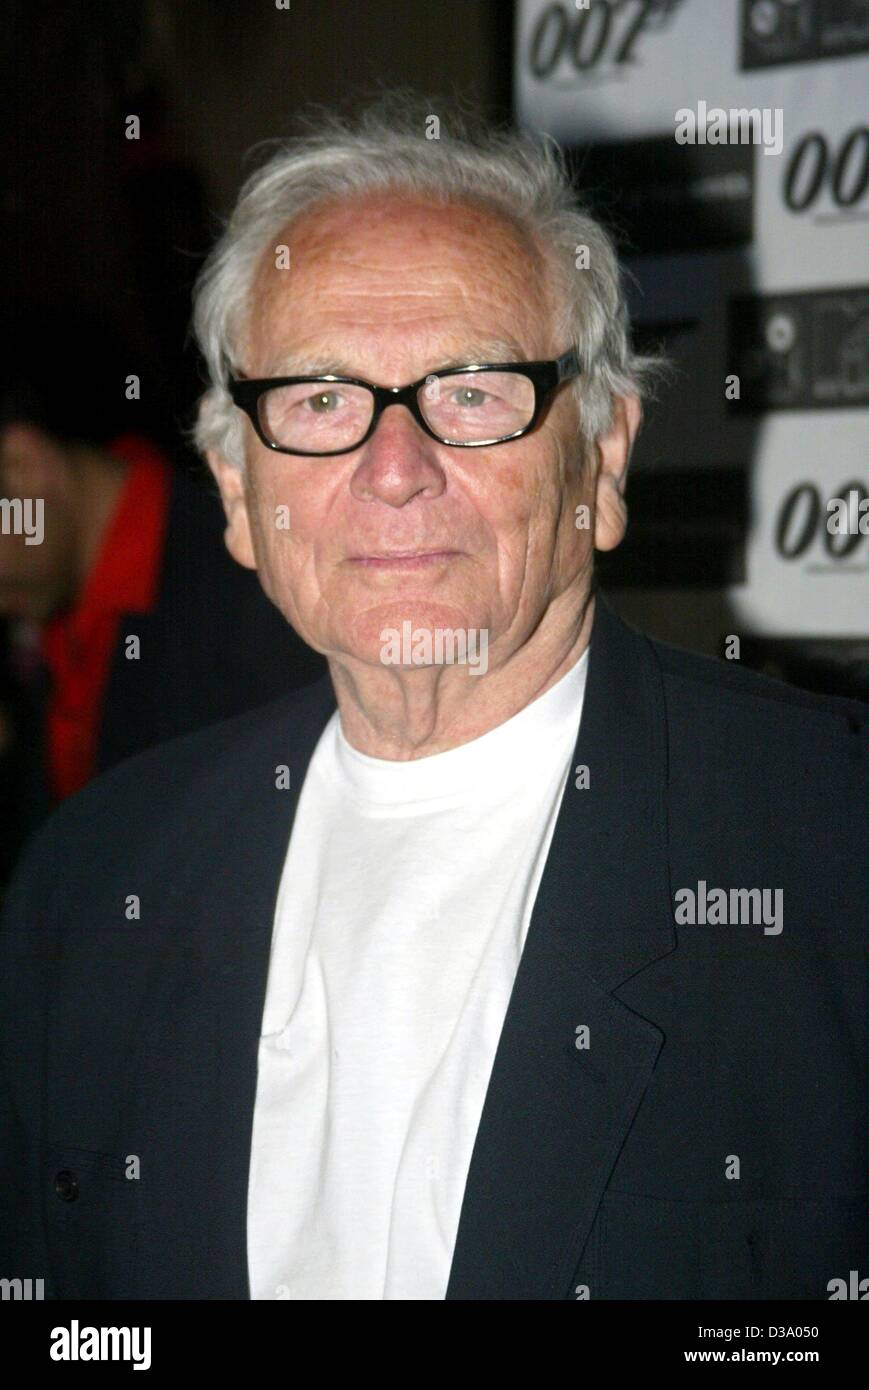 (dpa) - French fashion designer Pierre Cardin pictured in his villa near Cannes, France, 18 May 2002. - Stock Image